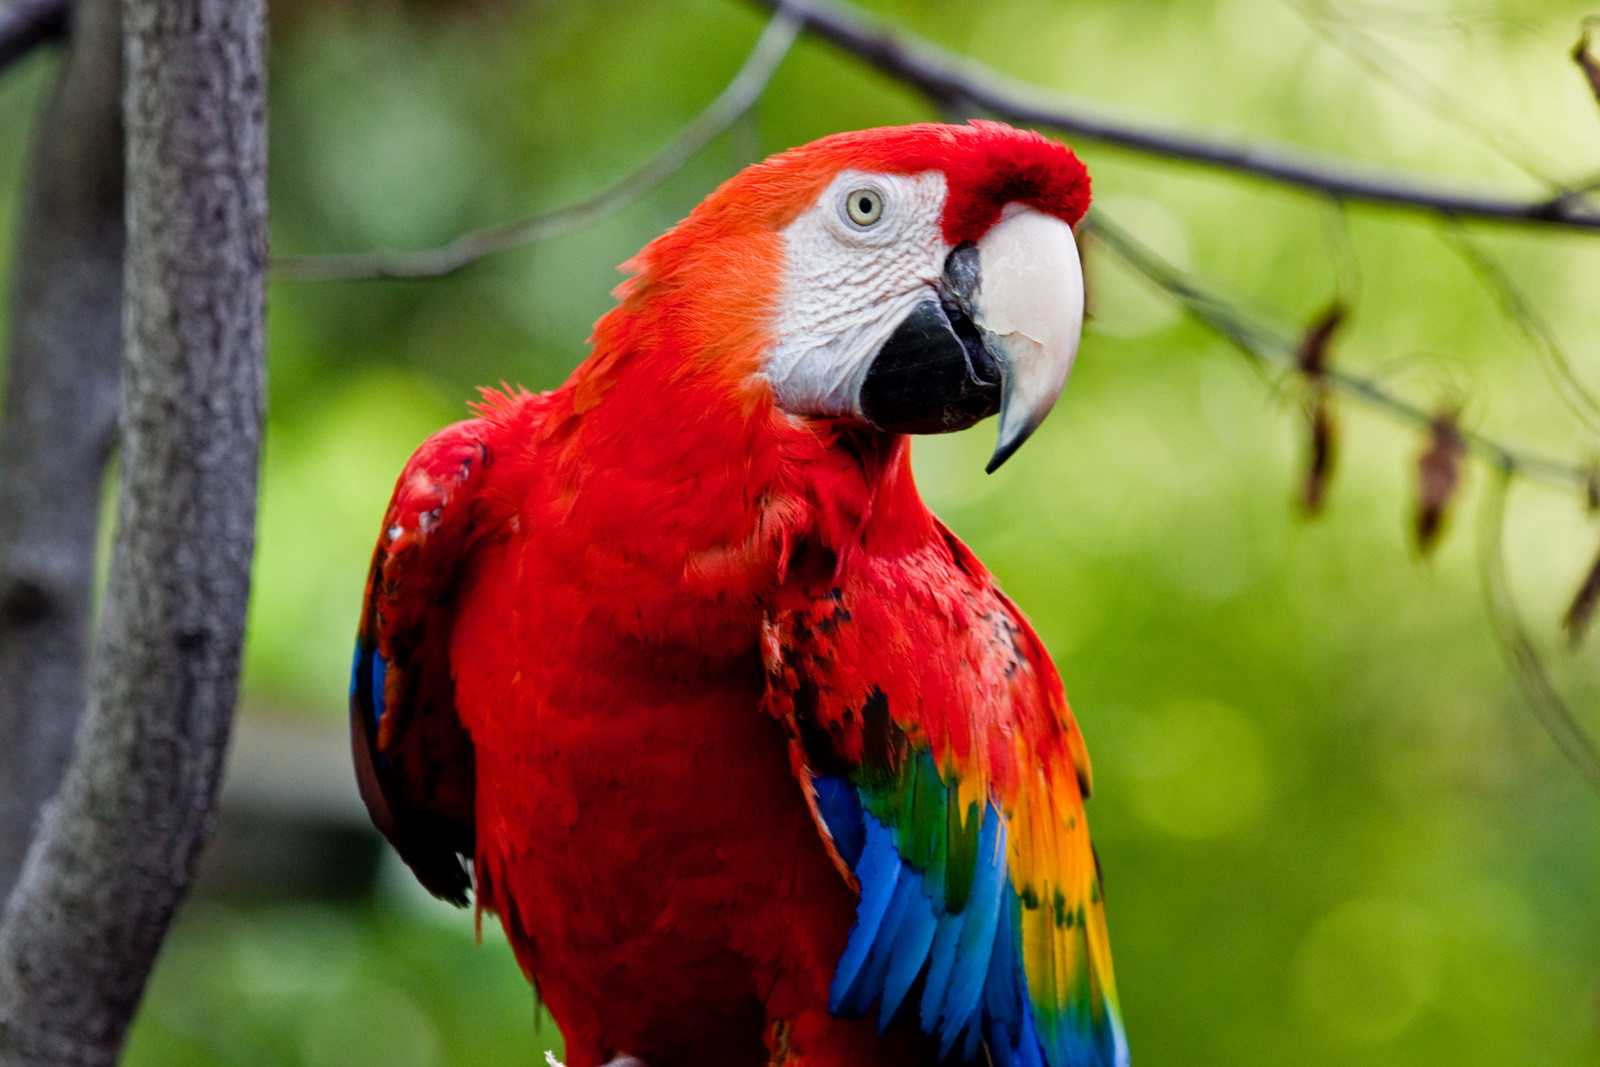 So You Think You Want a Parrot? Read This First